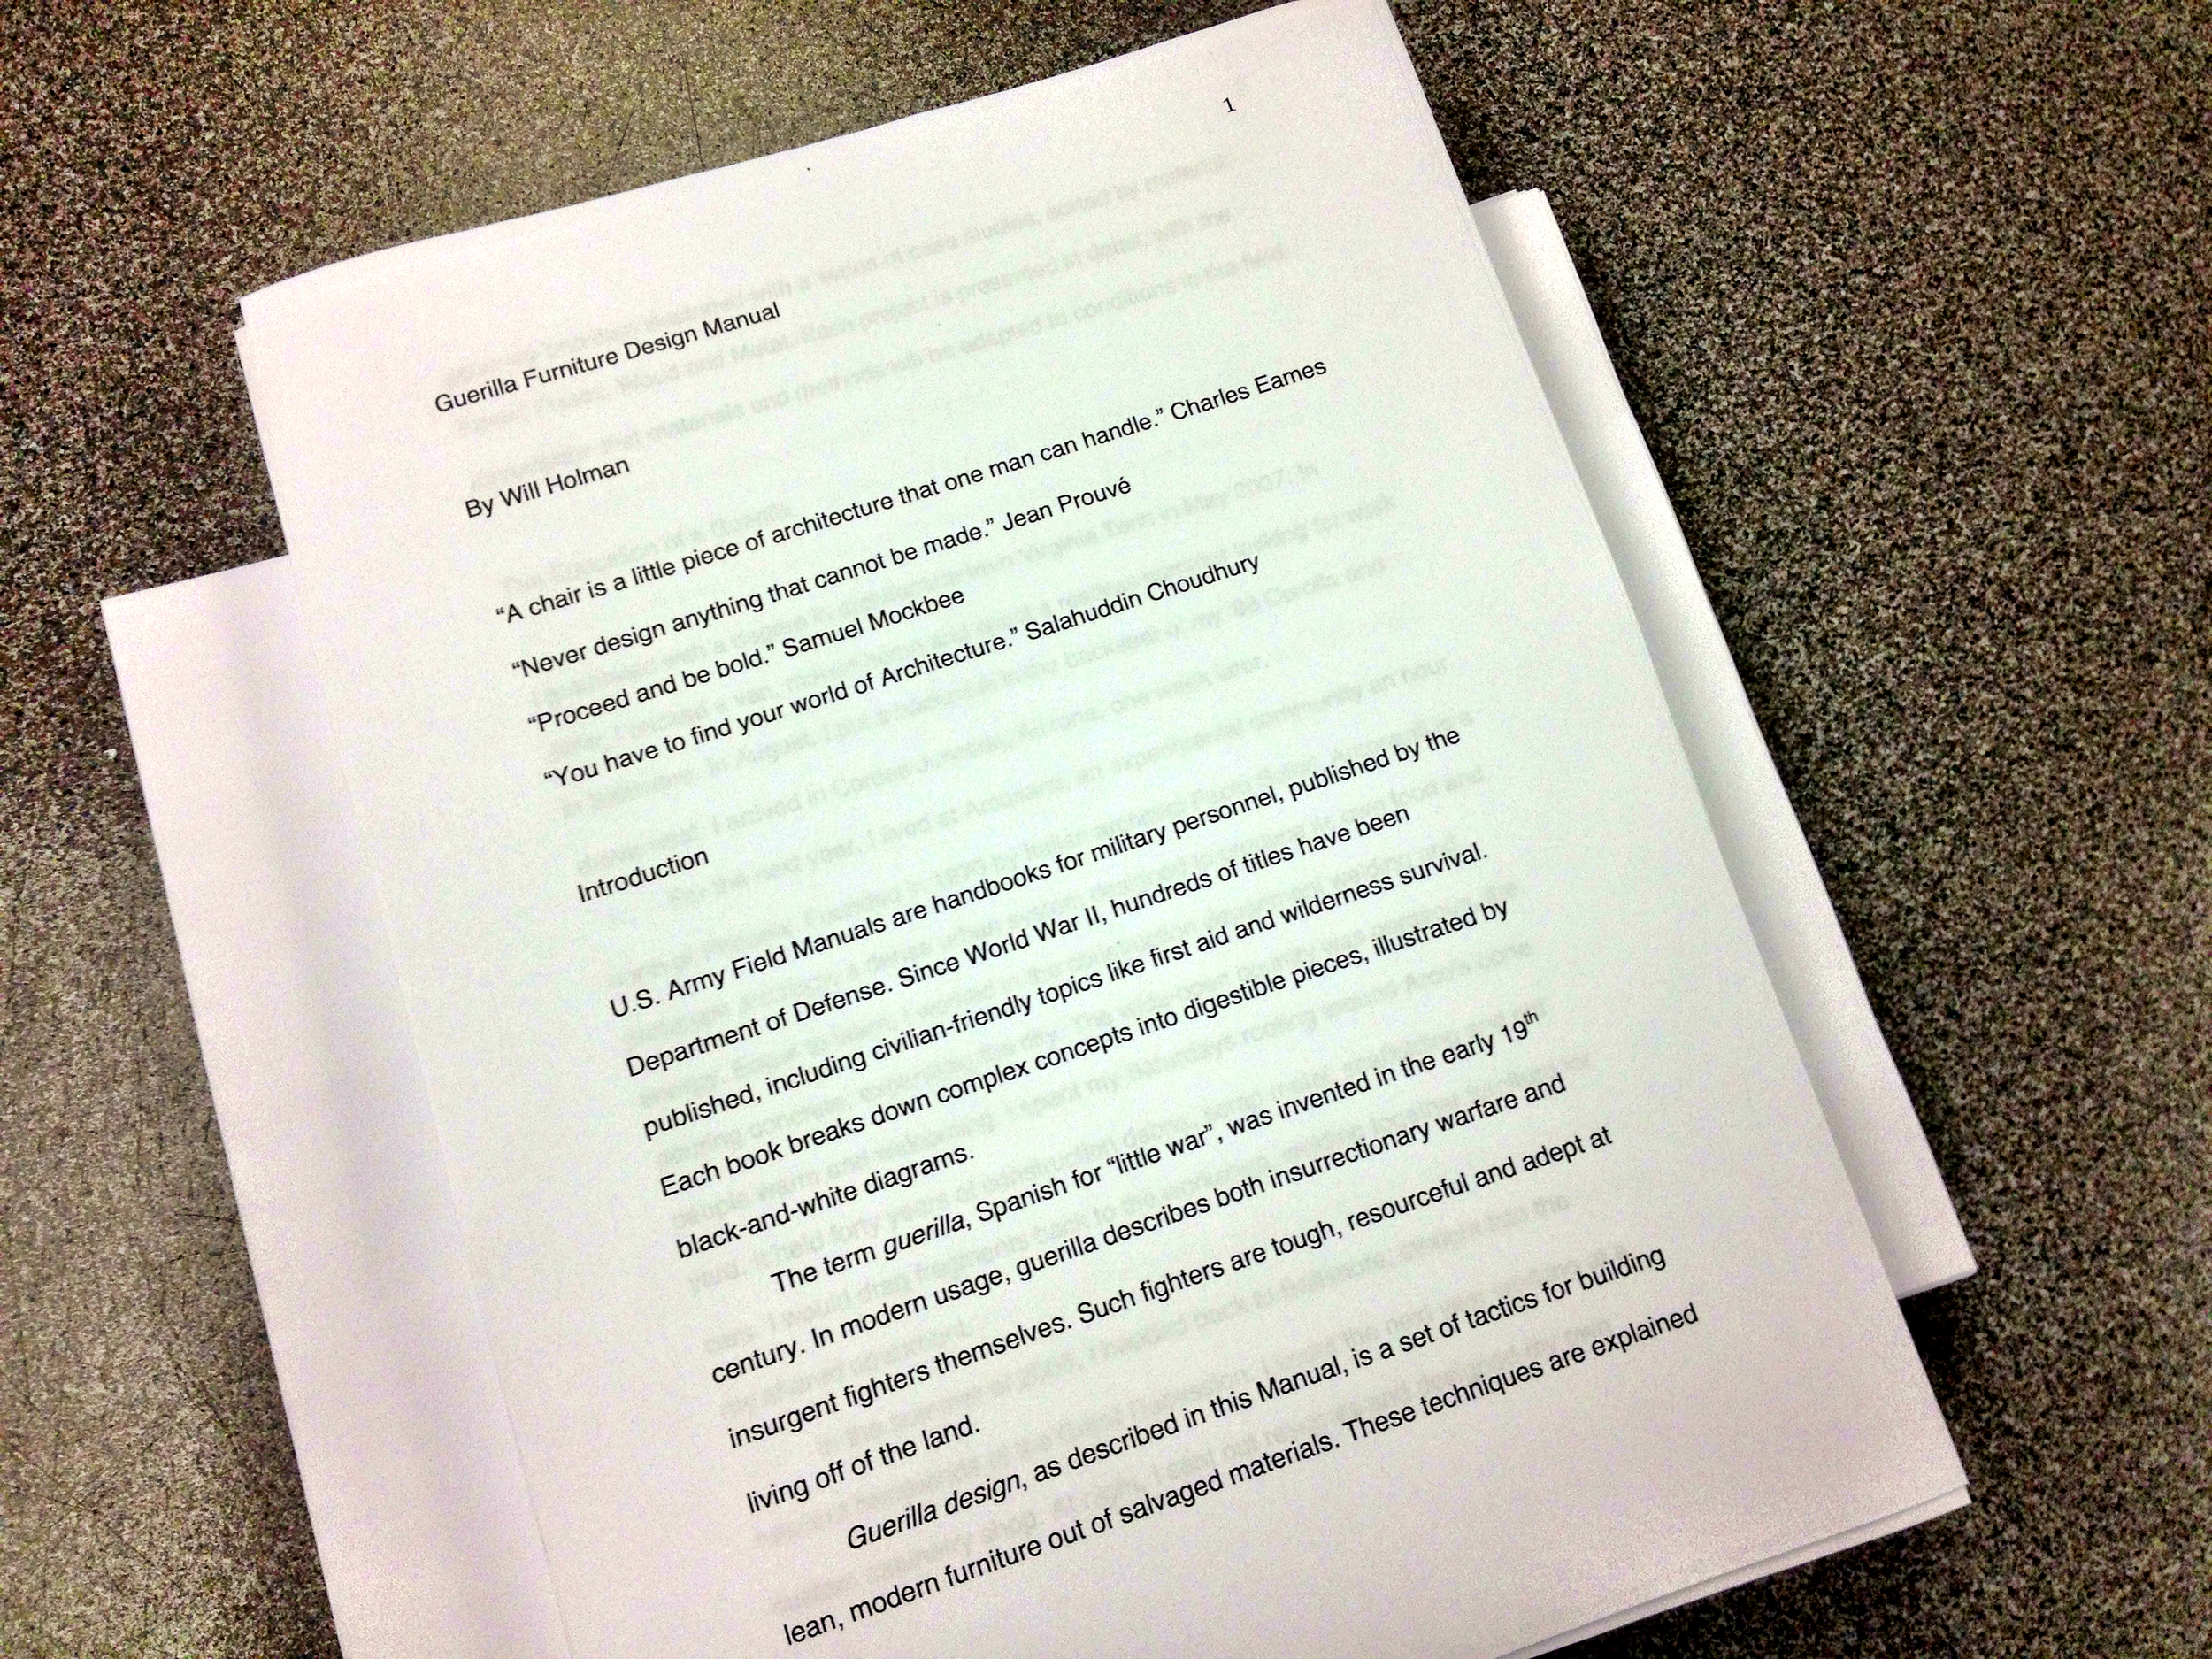 Two copies of the first draft, 233 pages each, roughly 41,000 words.